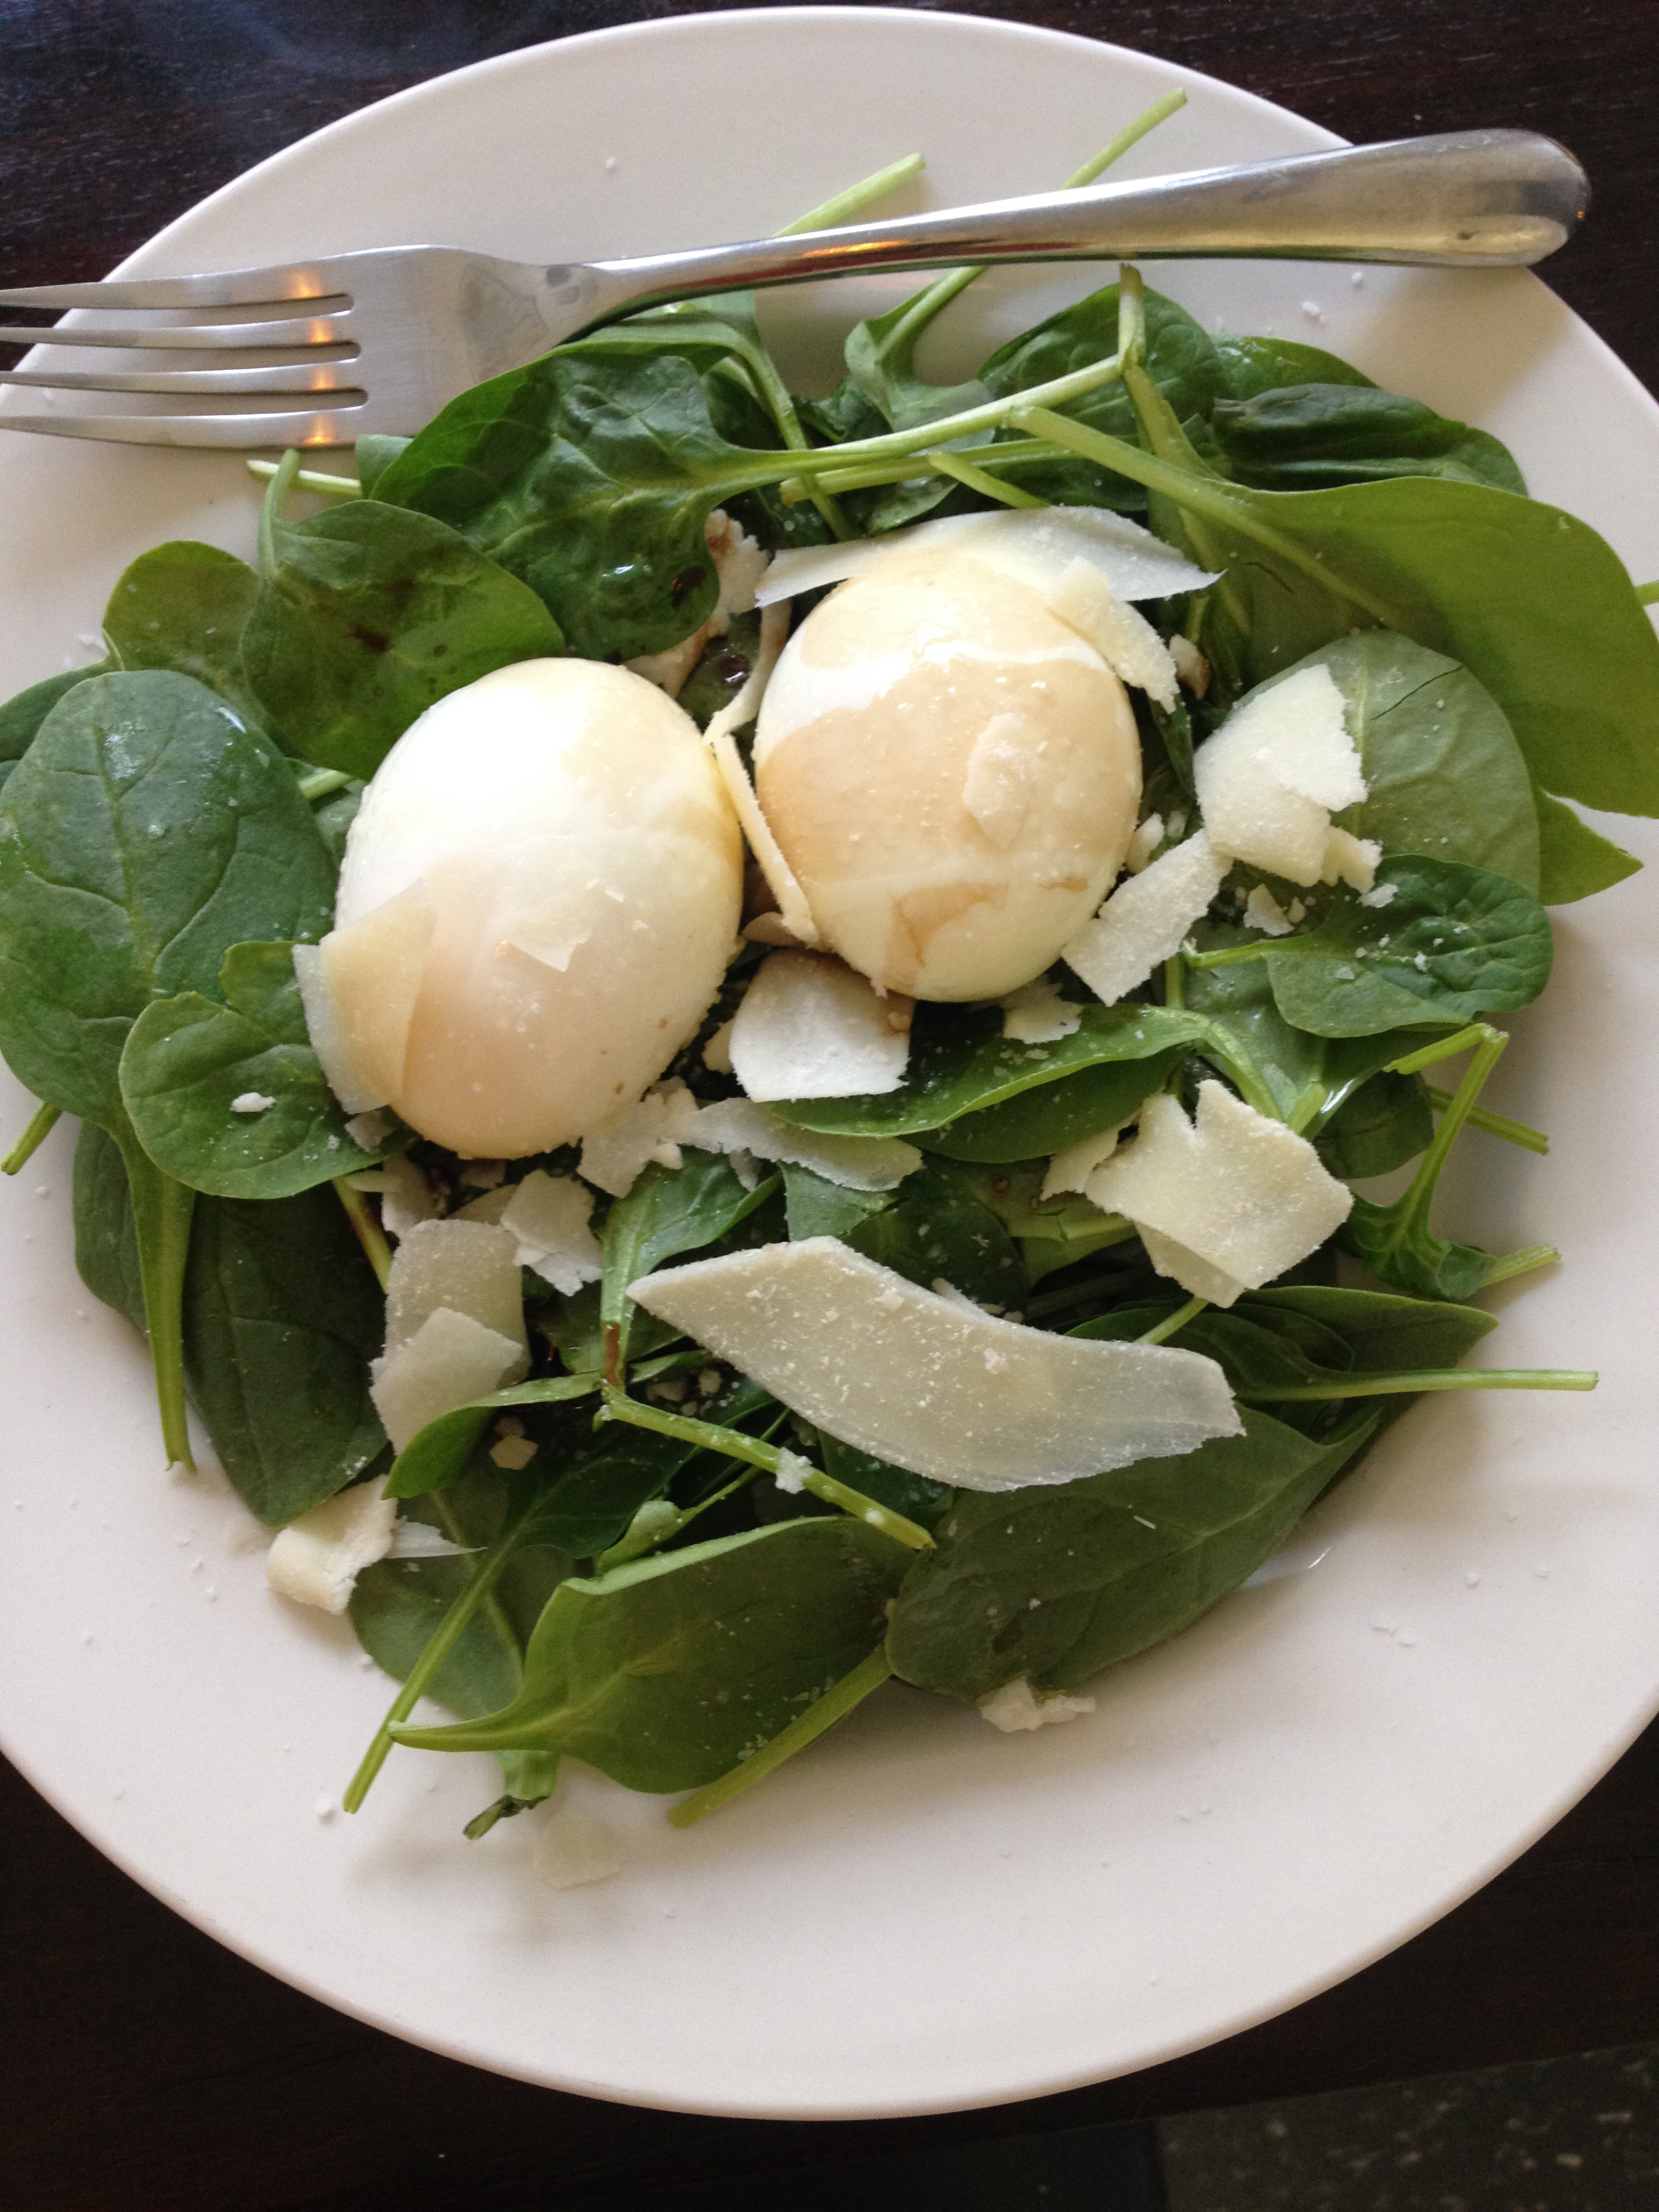 If You Need An Onthego Salad For Work, Opt For Hard Boiled Eggs Instead  €� Feel Free To Switch Out Spinach For Other Healthy Greens Like